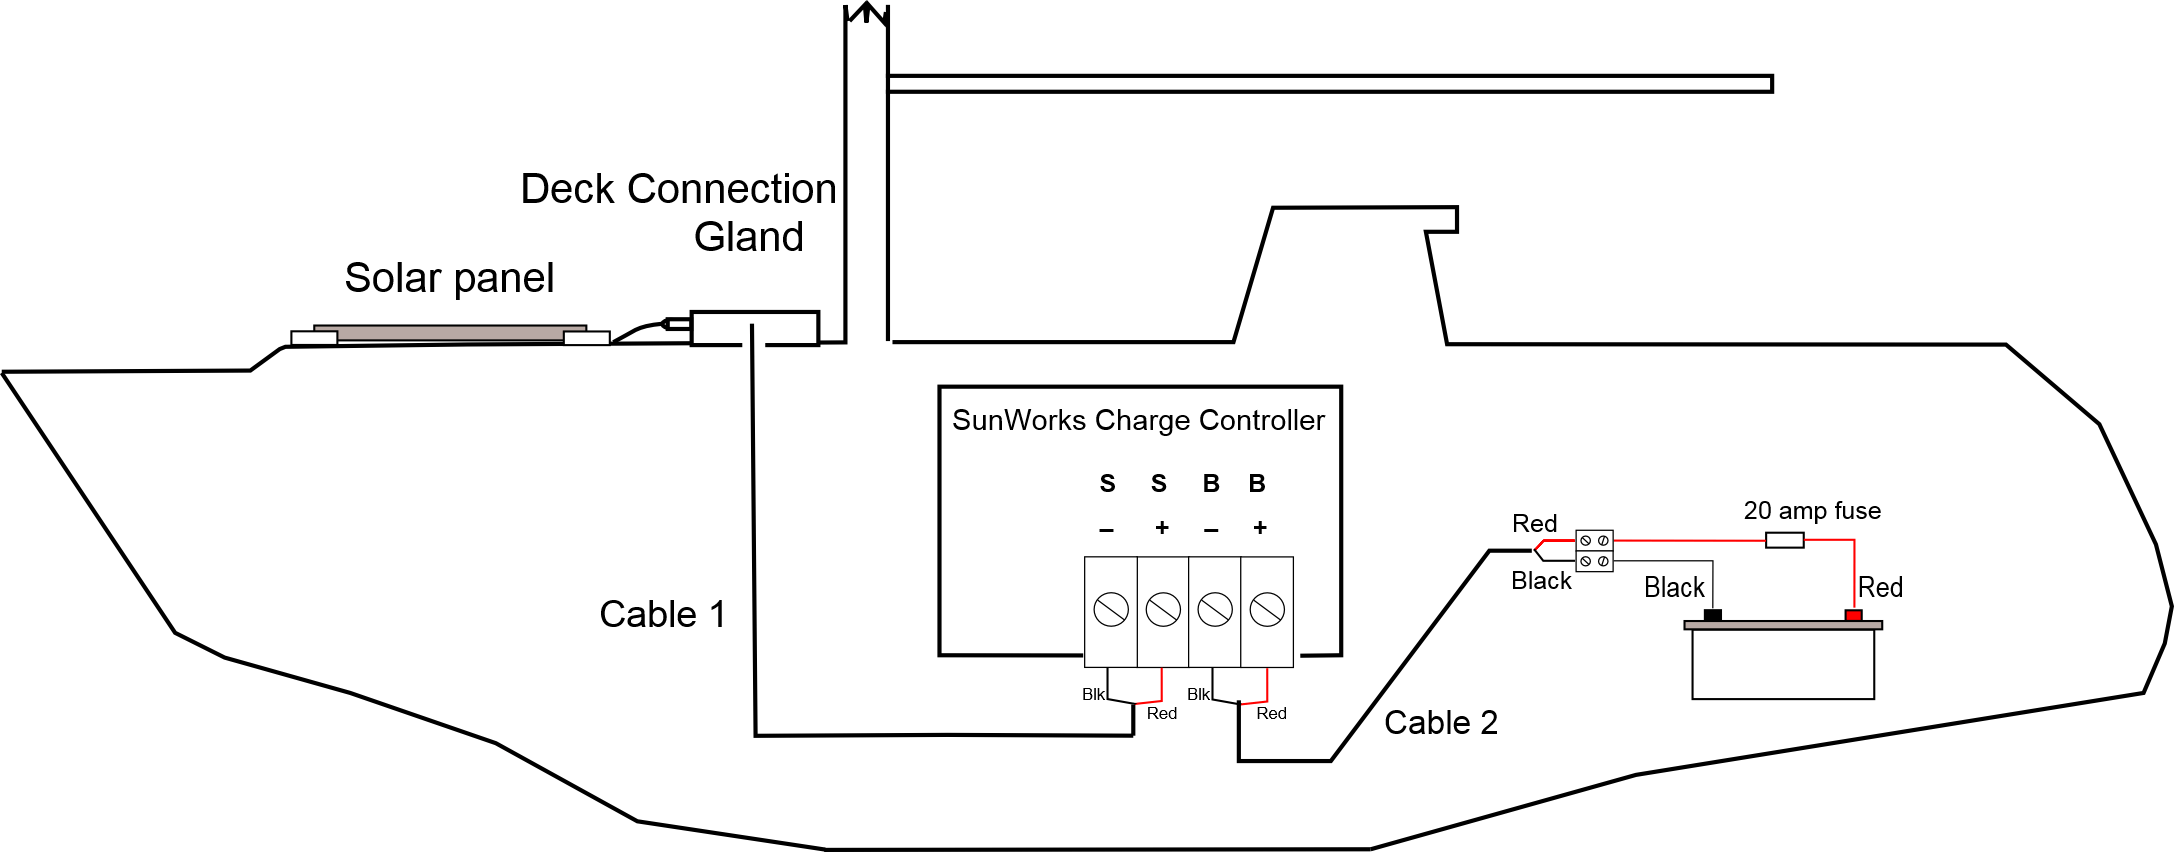 wiring diagram for solar panel to battery influenza venn charge controller with lcd display 11 amp sunworks